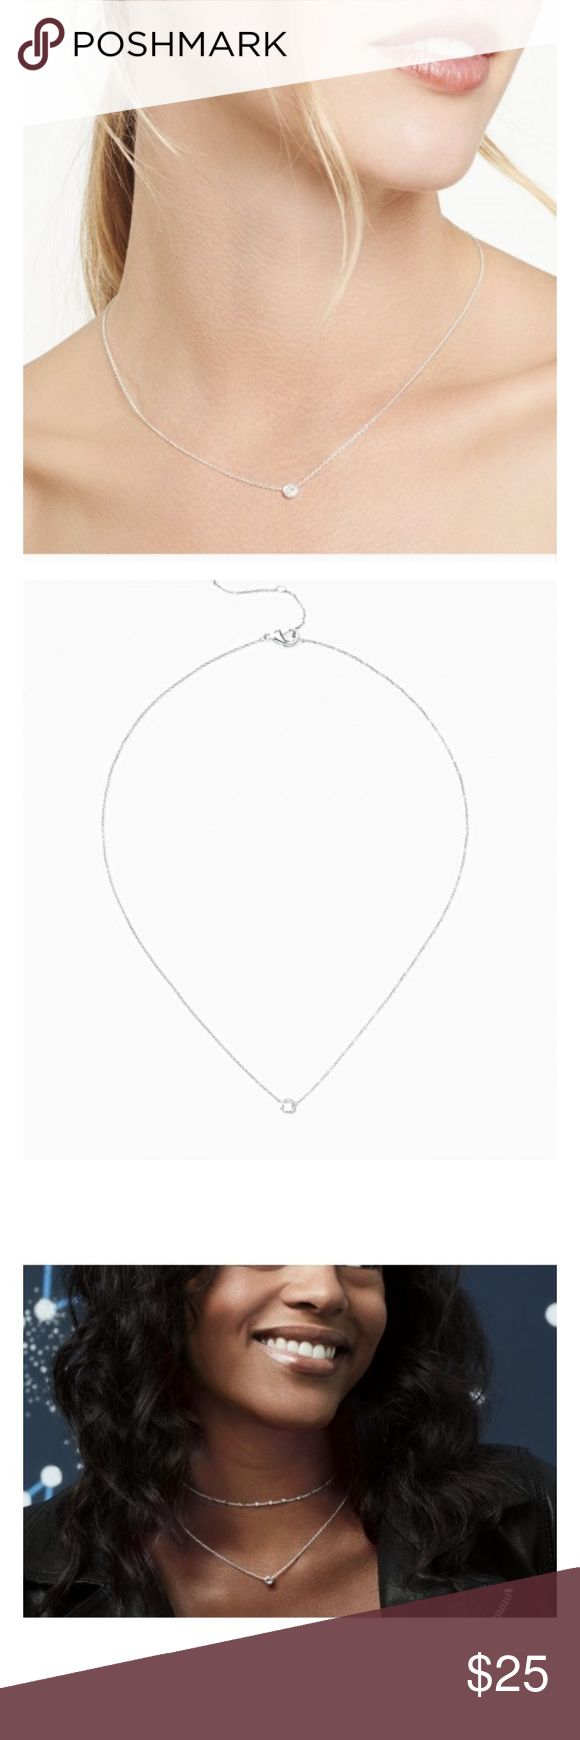 Stella and Dot Wishing Necklace Brand New in box Wishing Necklace from Stella & Dot featured in silver. Necklace is from their brand new spring line and still on their website for $34. Stella & Dot Jewelry Necklaces